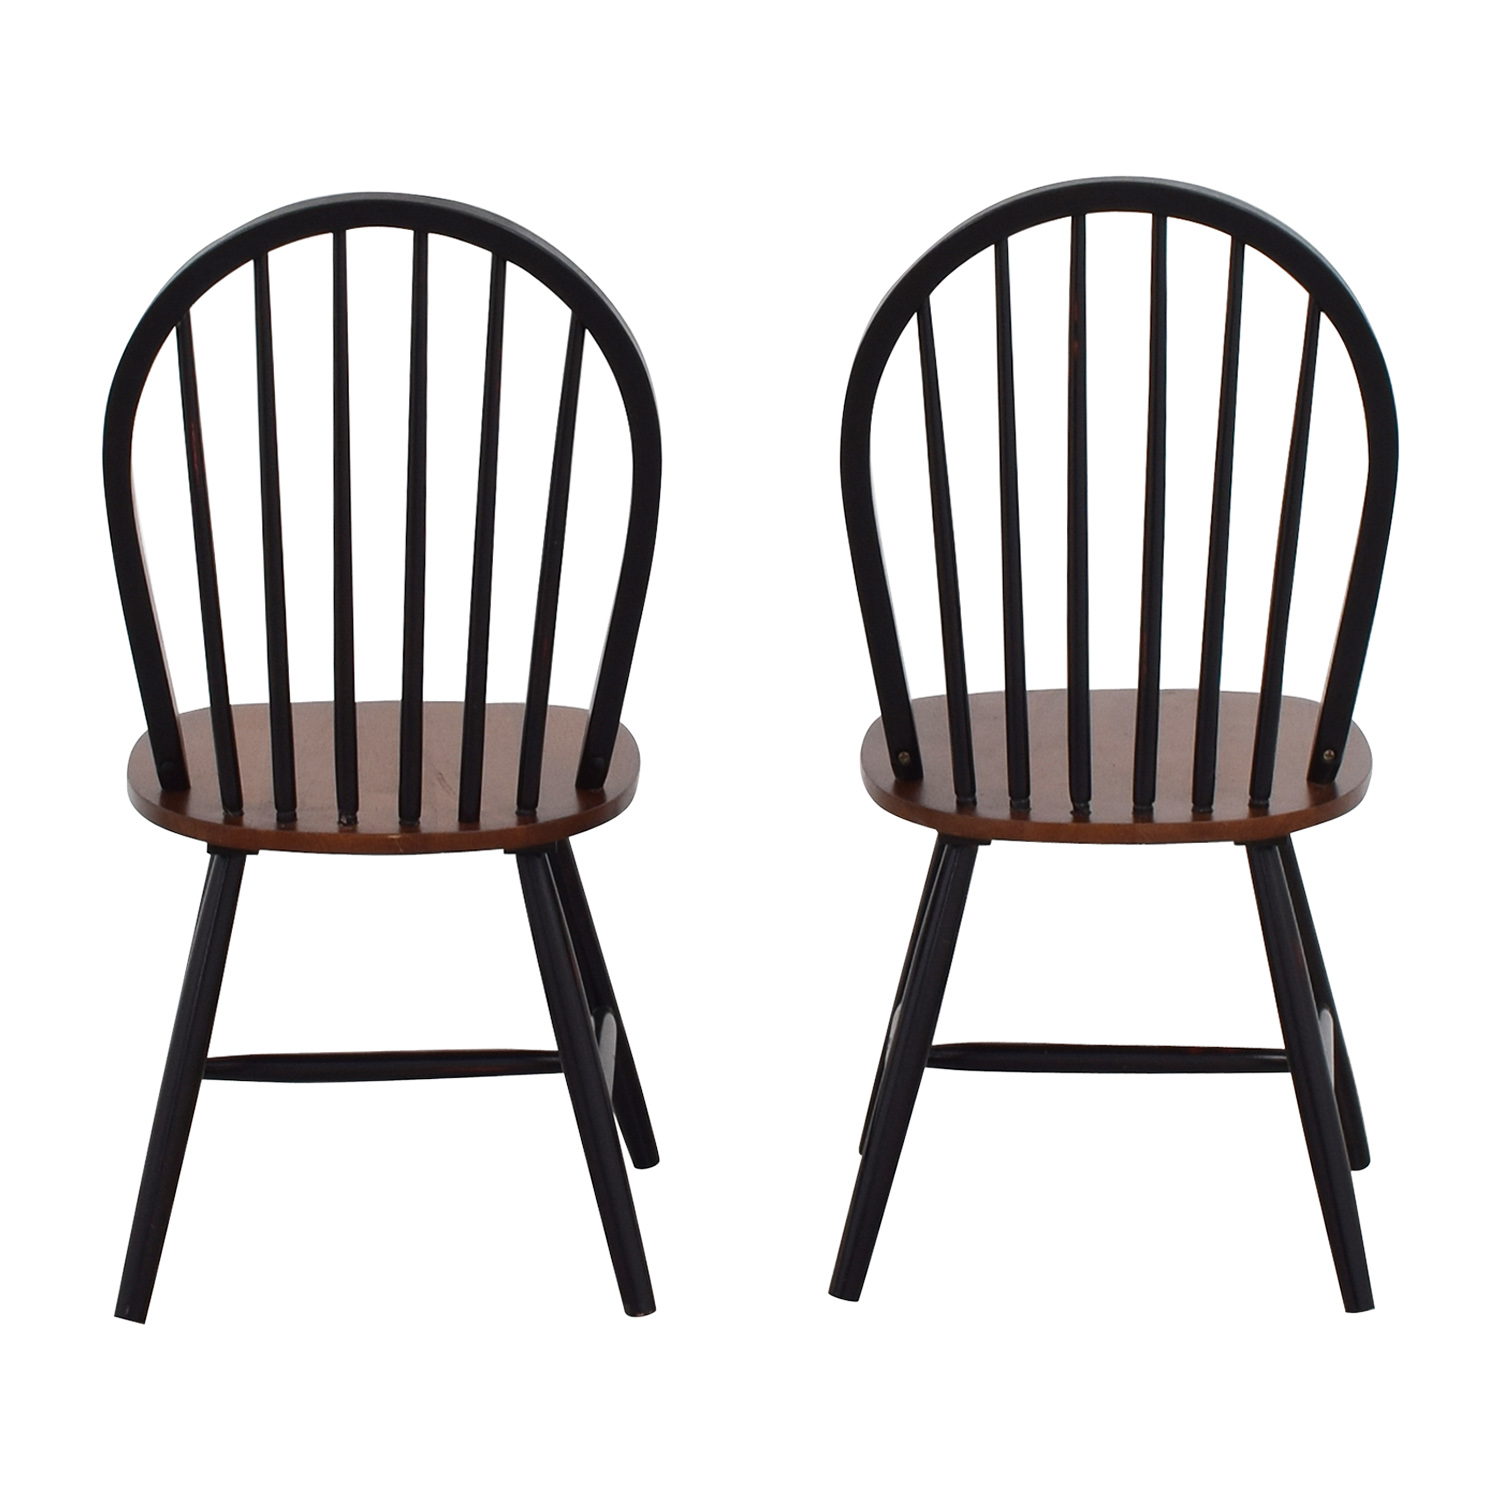 Two-Tone Wood Dining Chairs Black / Brown